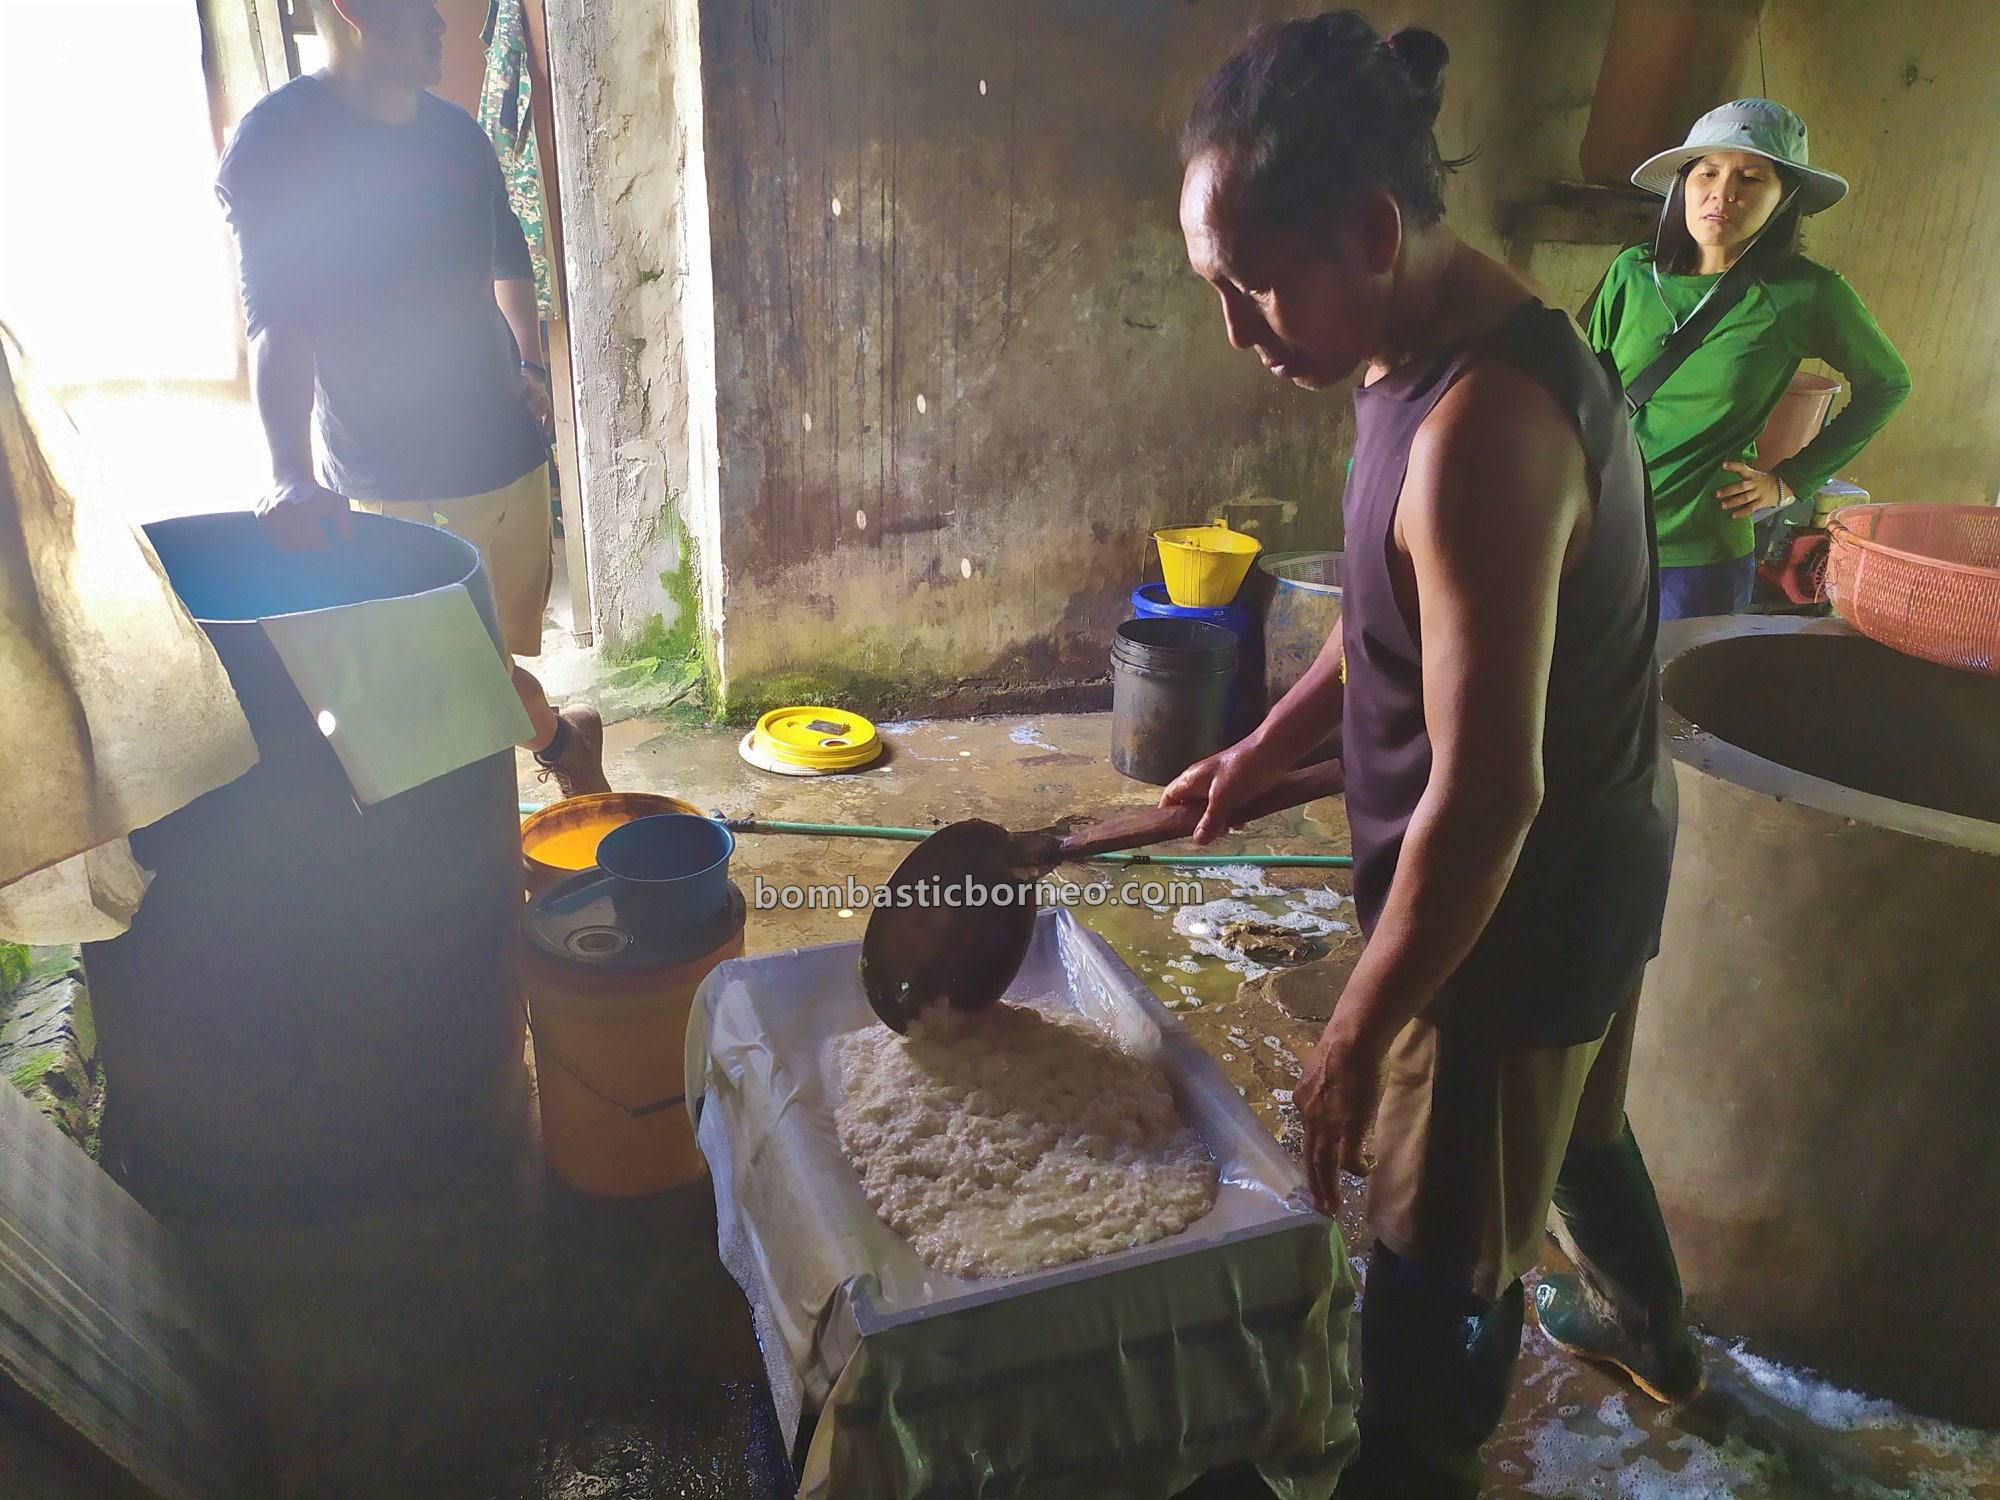 pembuatan tahu, tofu making, Long Midang, traditional, exploration, backpackers, Indonesia, North Kalimantan, Nunukan, Krayan, Interior village, Objek wisata, Tourism, Cross Border, Borneo,